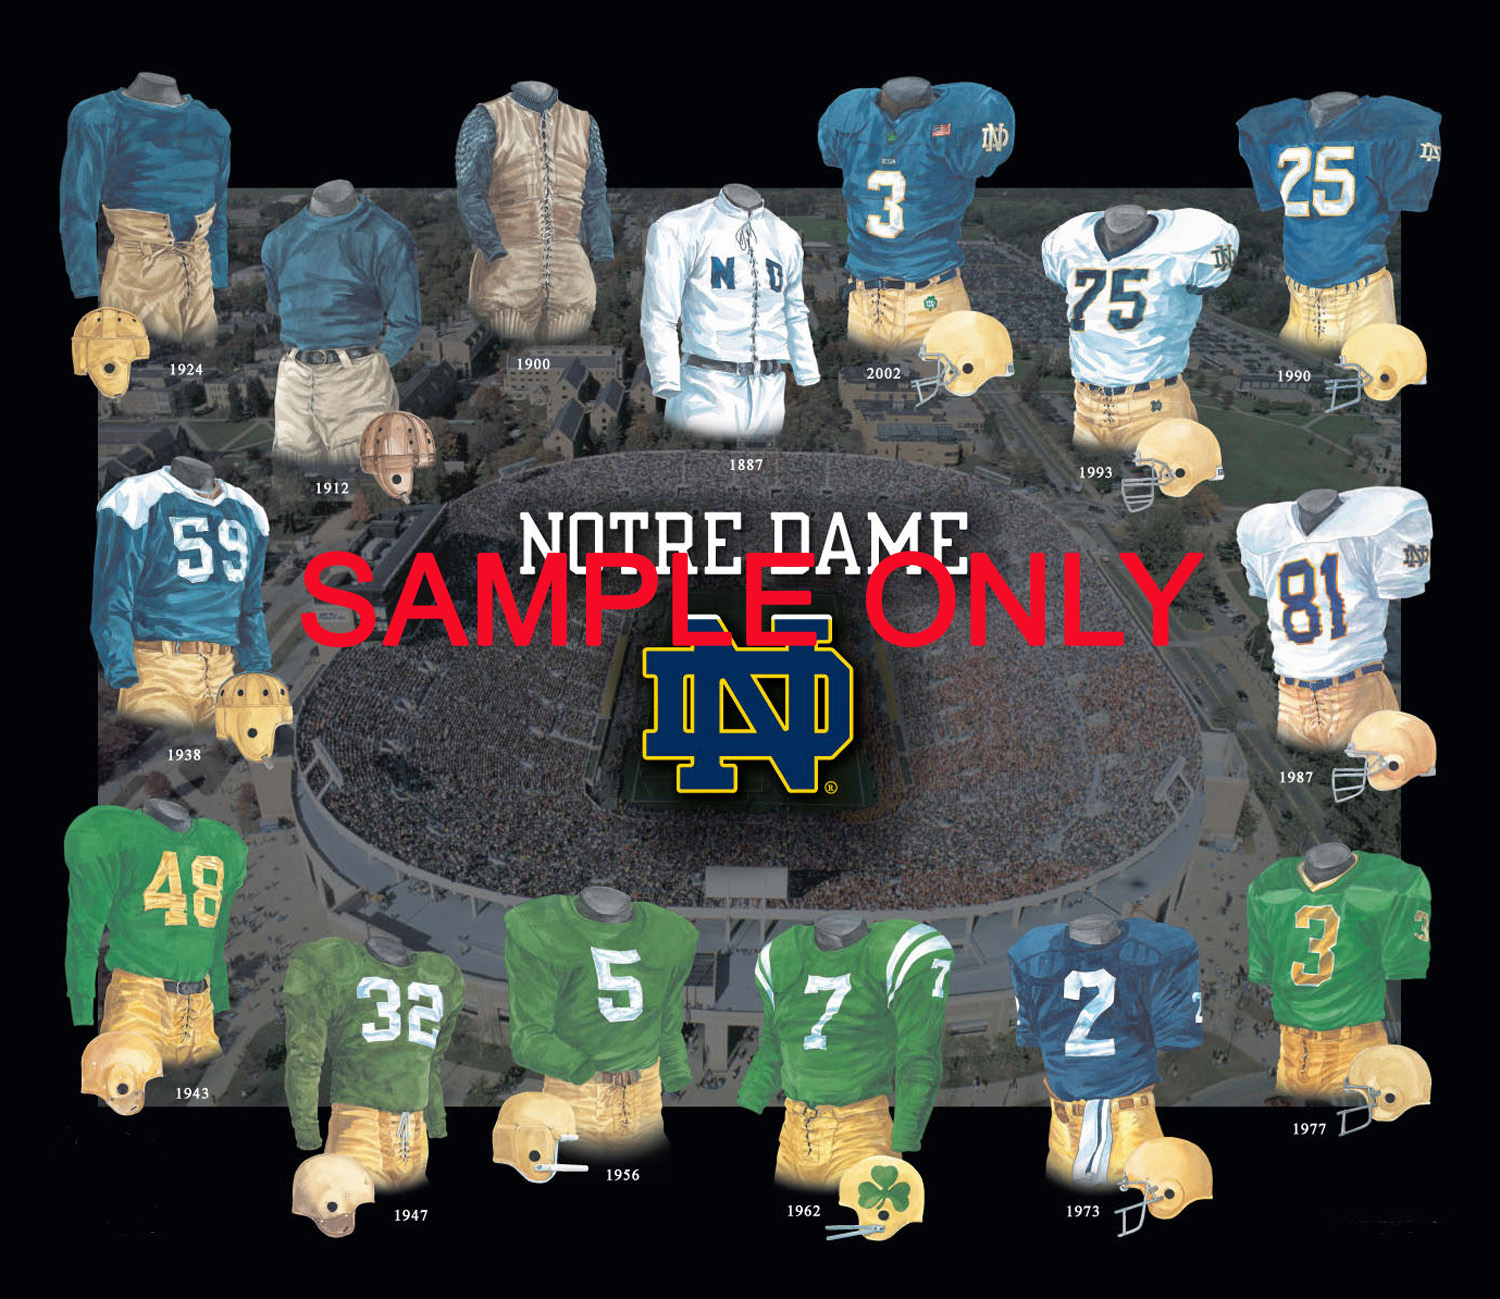 b5121d89d University of Notre Dame Fighting Irish Football Uniform and Team History